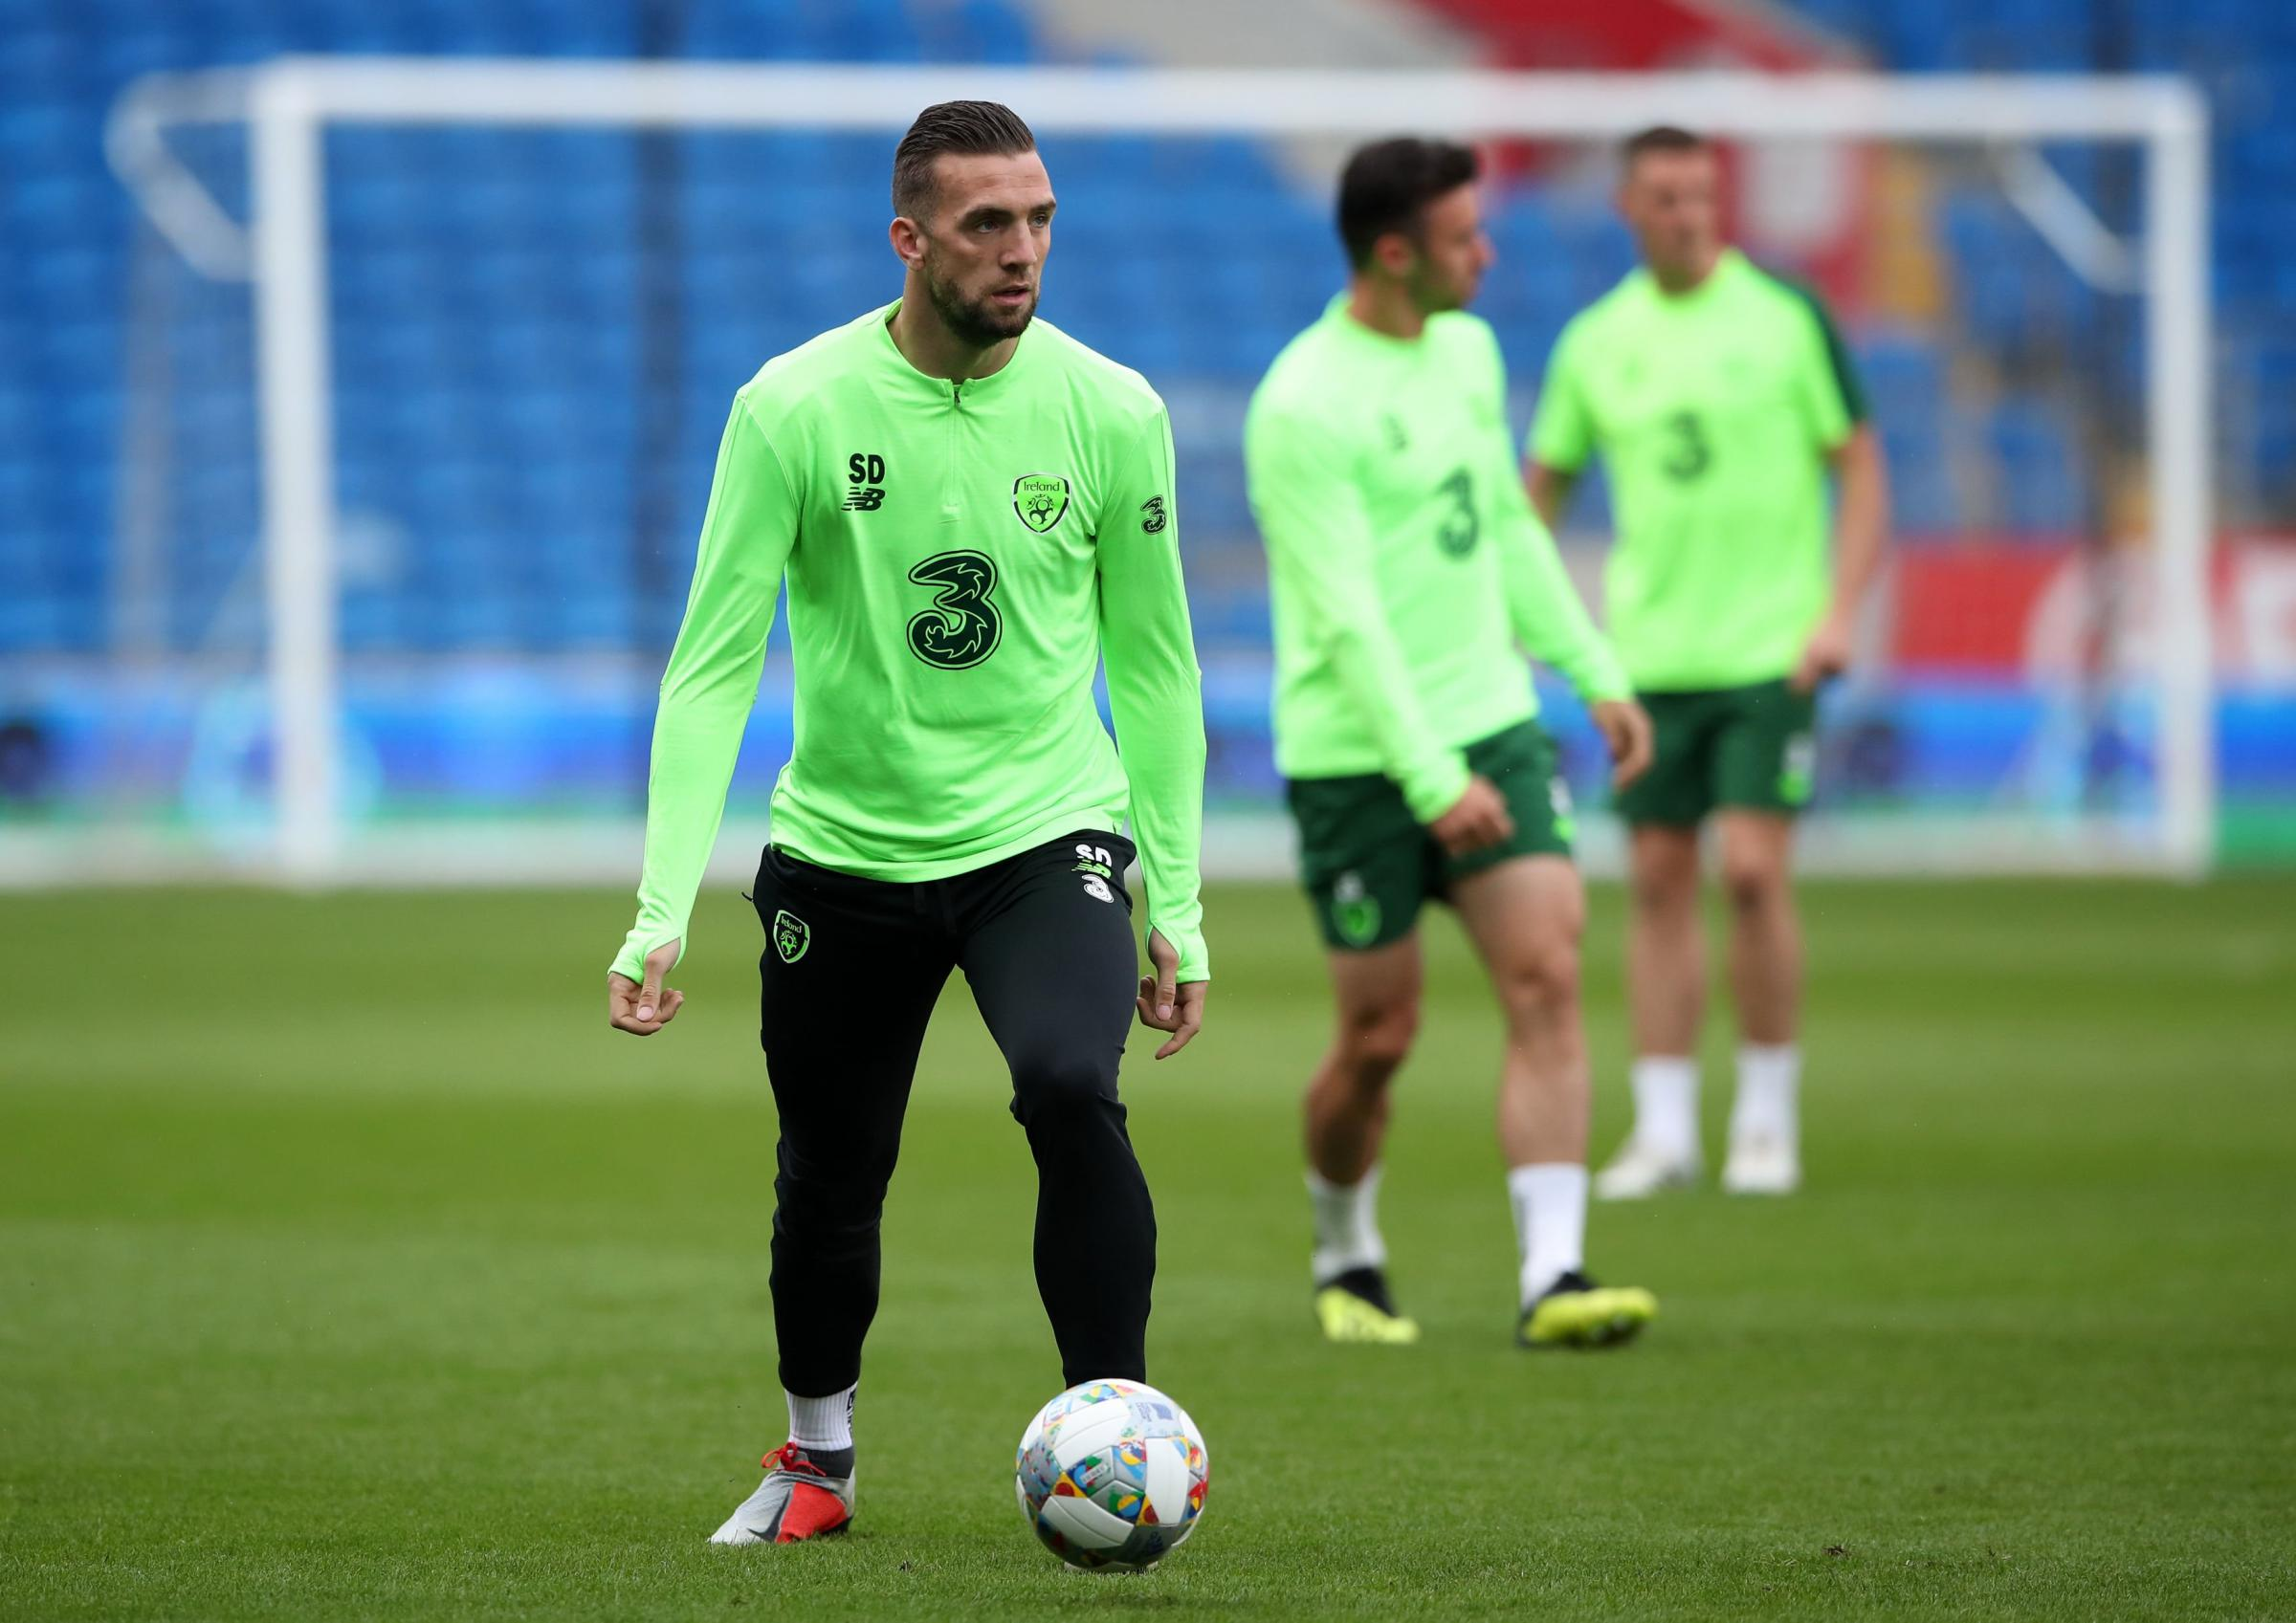 Shane Duffy is grateful for Albion's faith in his ability